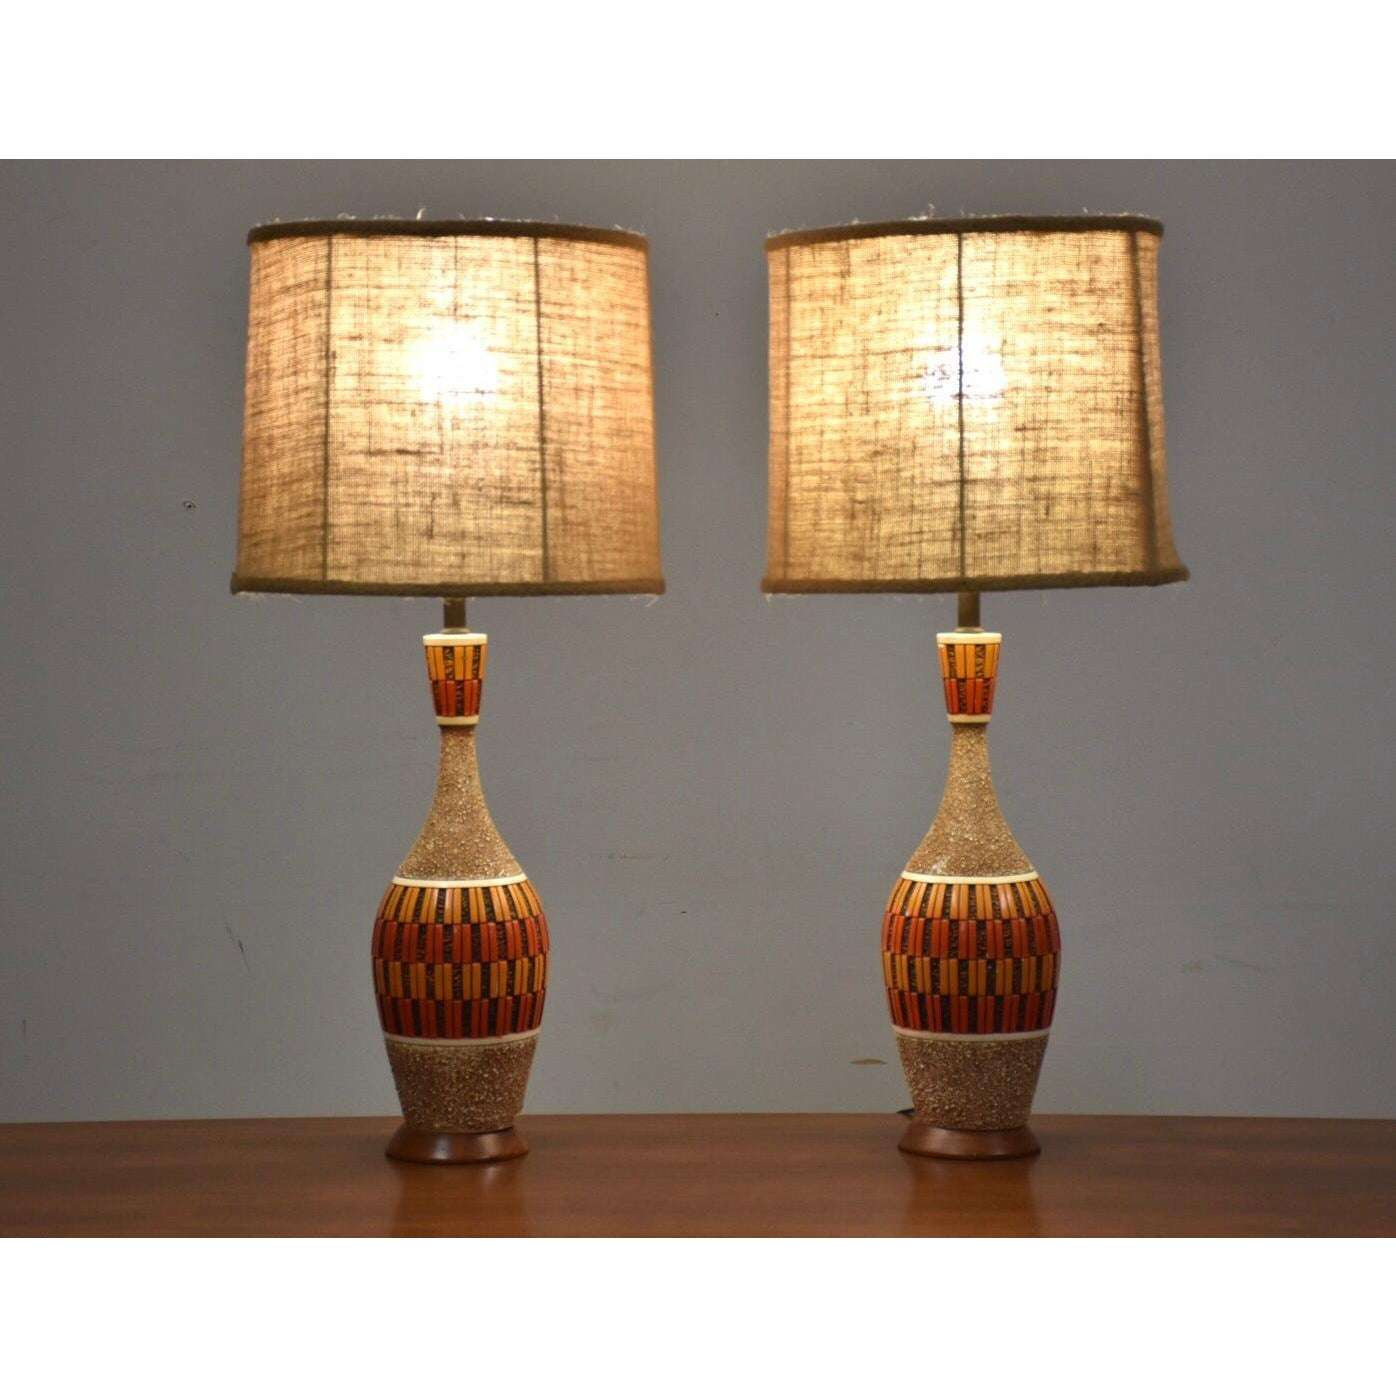 Mid Century Modern Table Lamps By Quartite A Pair Mixed Modern Furniture Mid Century Furniture Dealer